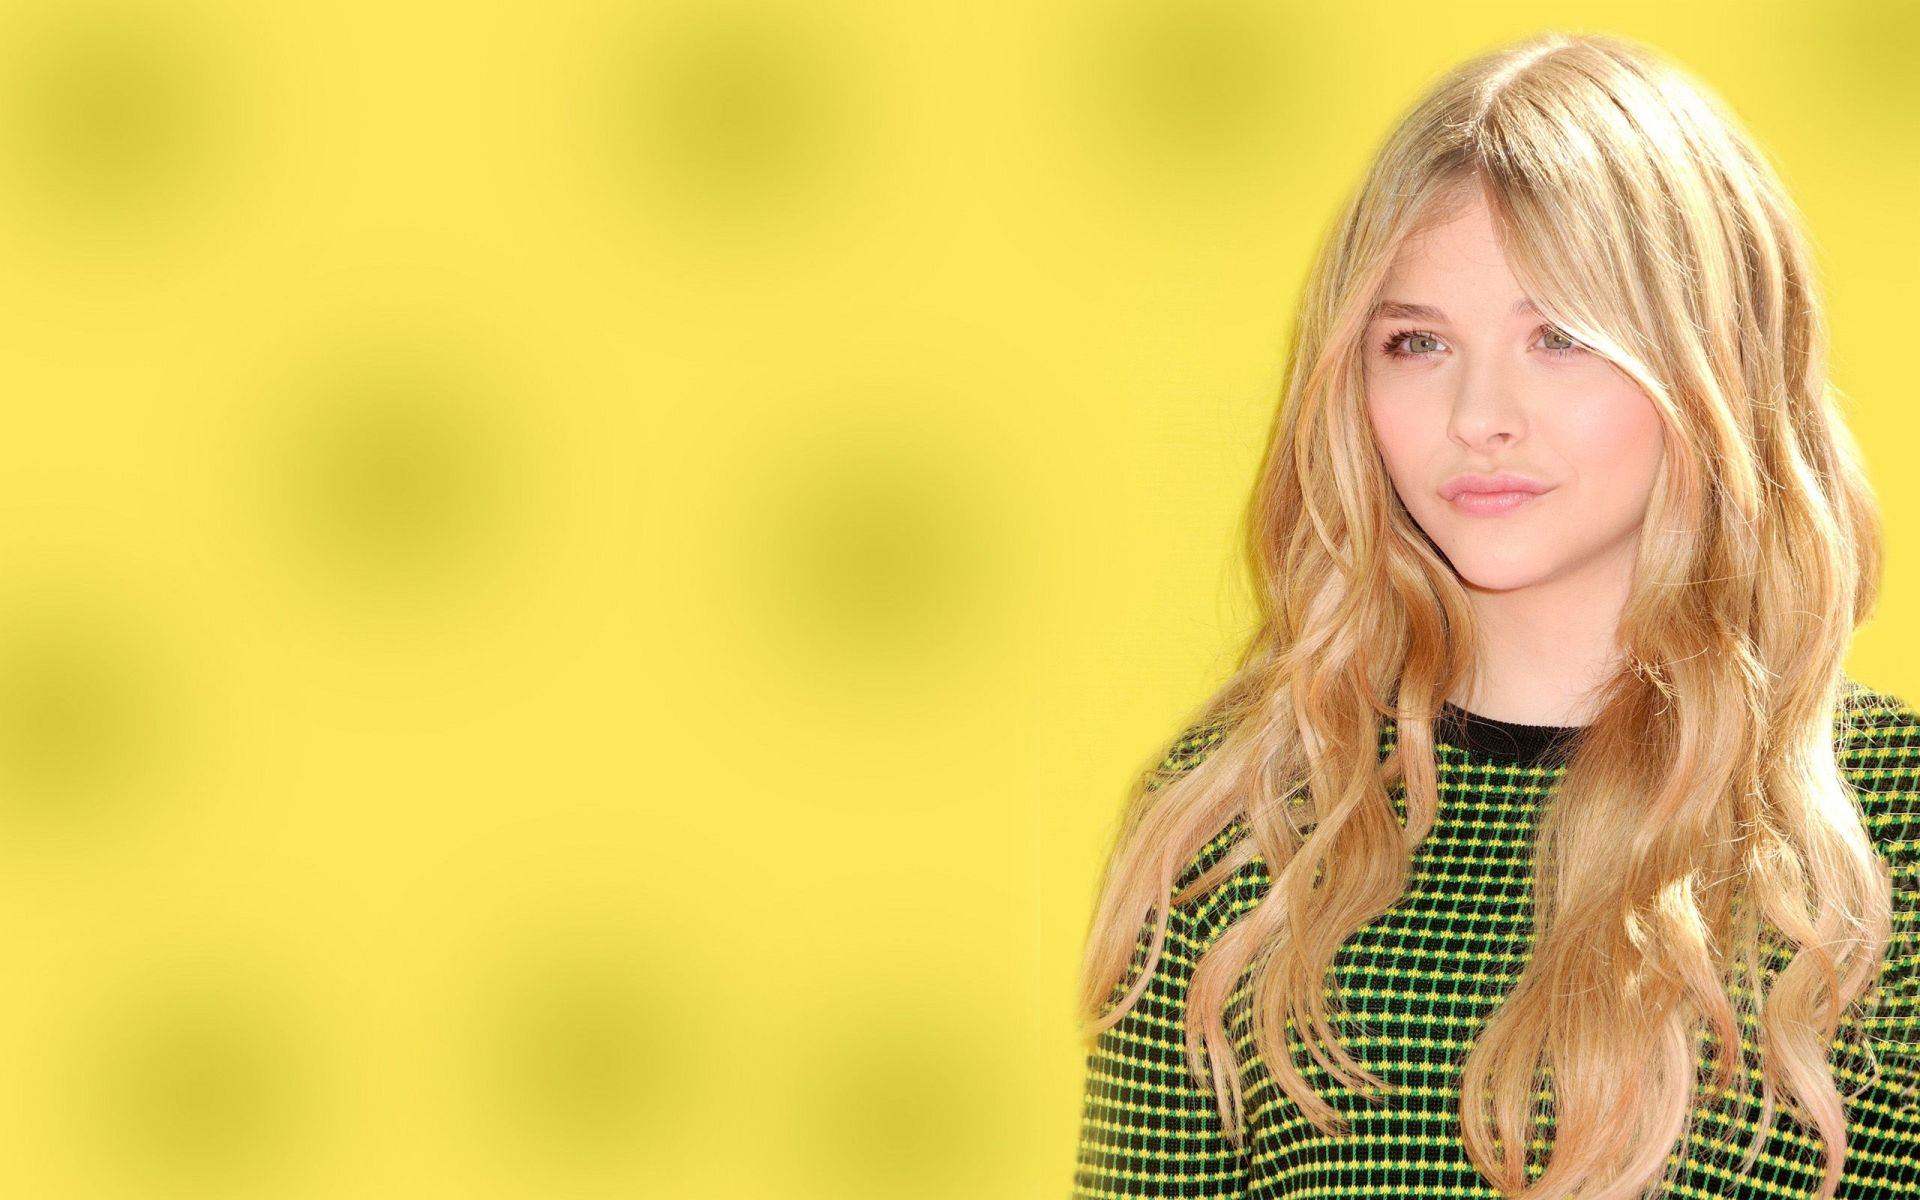 chlo grace moretz wallpapers high resolution and quality